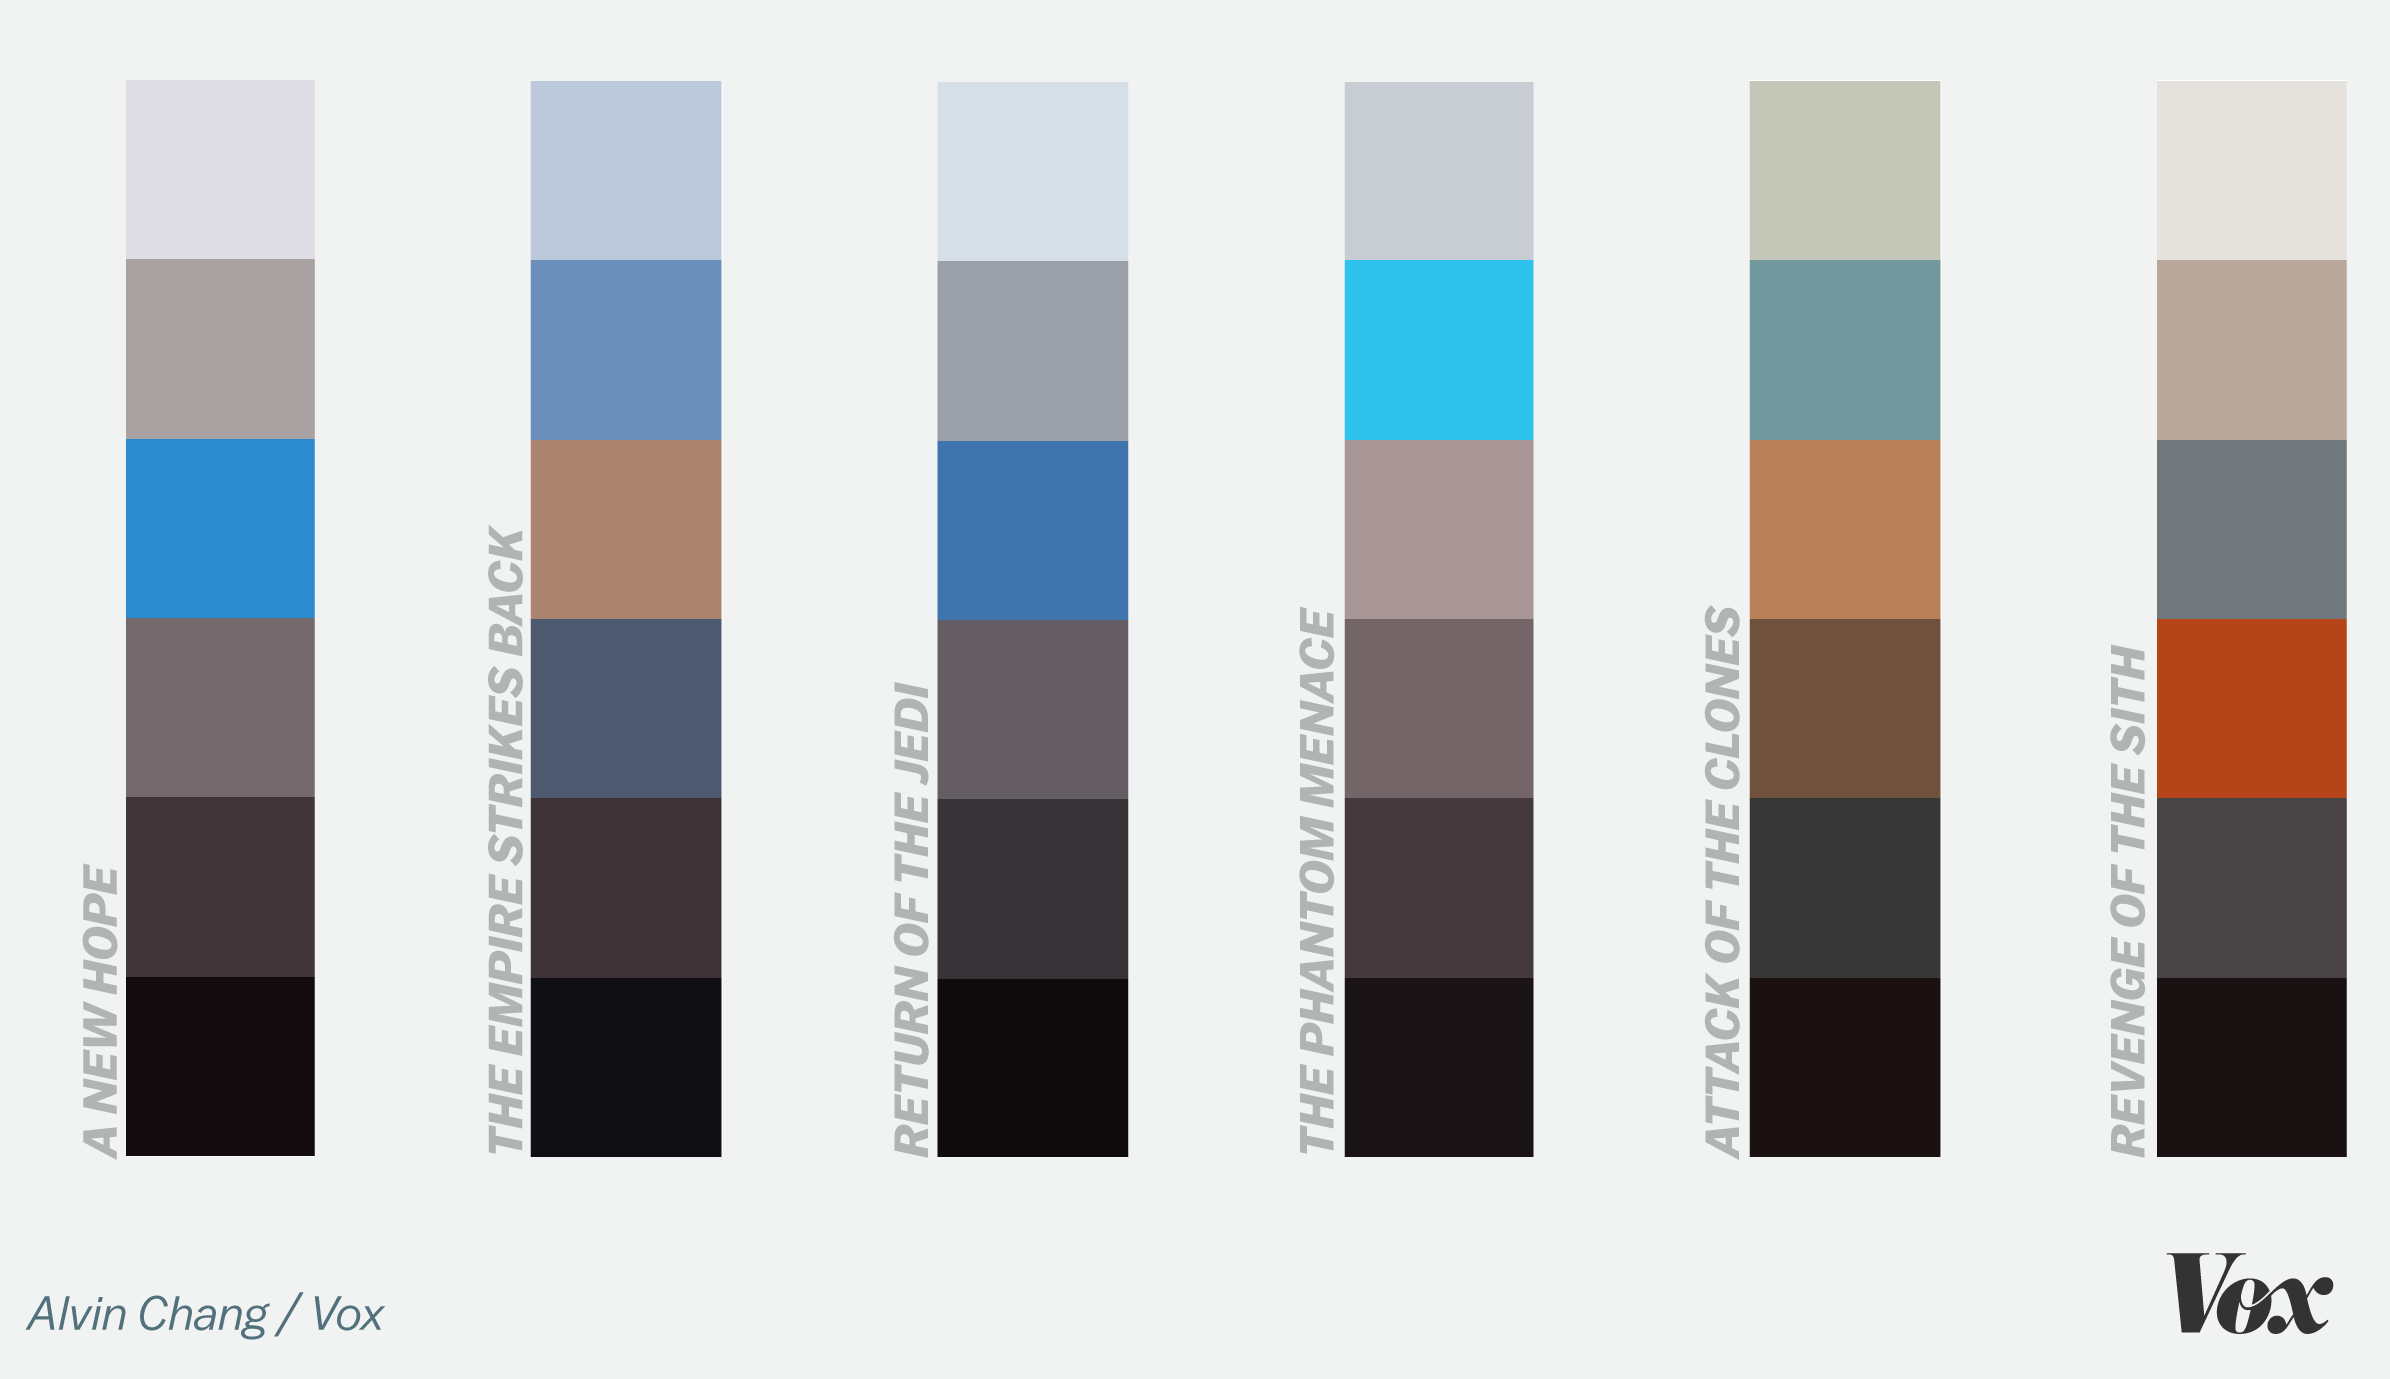 Star Wars Bettwäsche Every Star Wars Movie According To Its Colors Vox